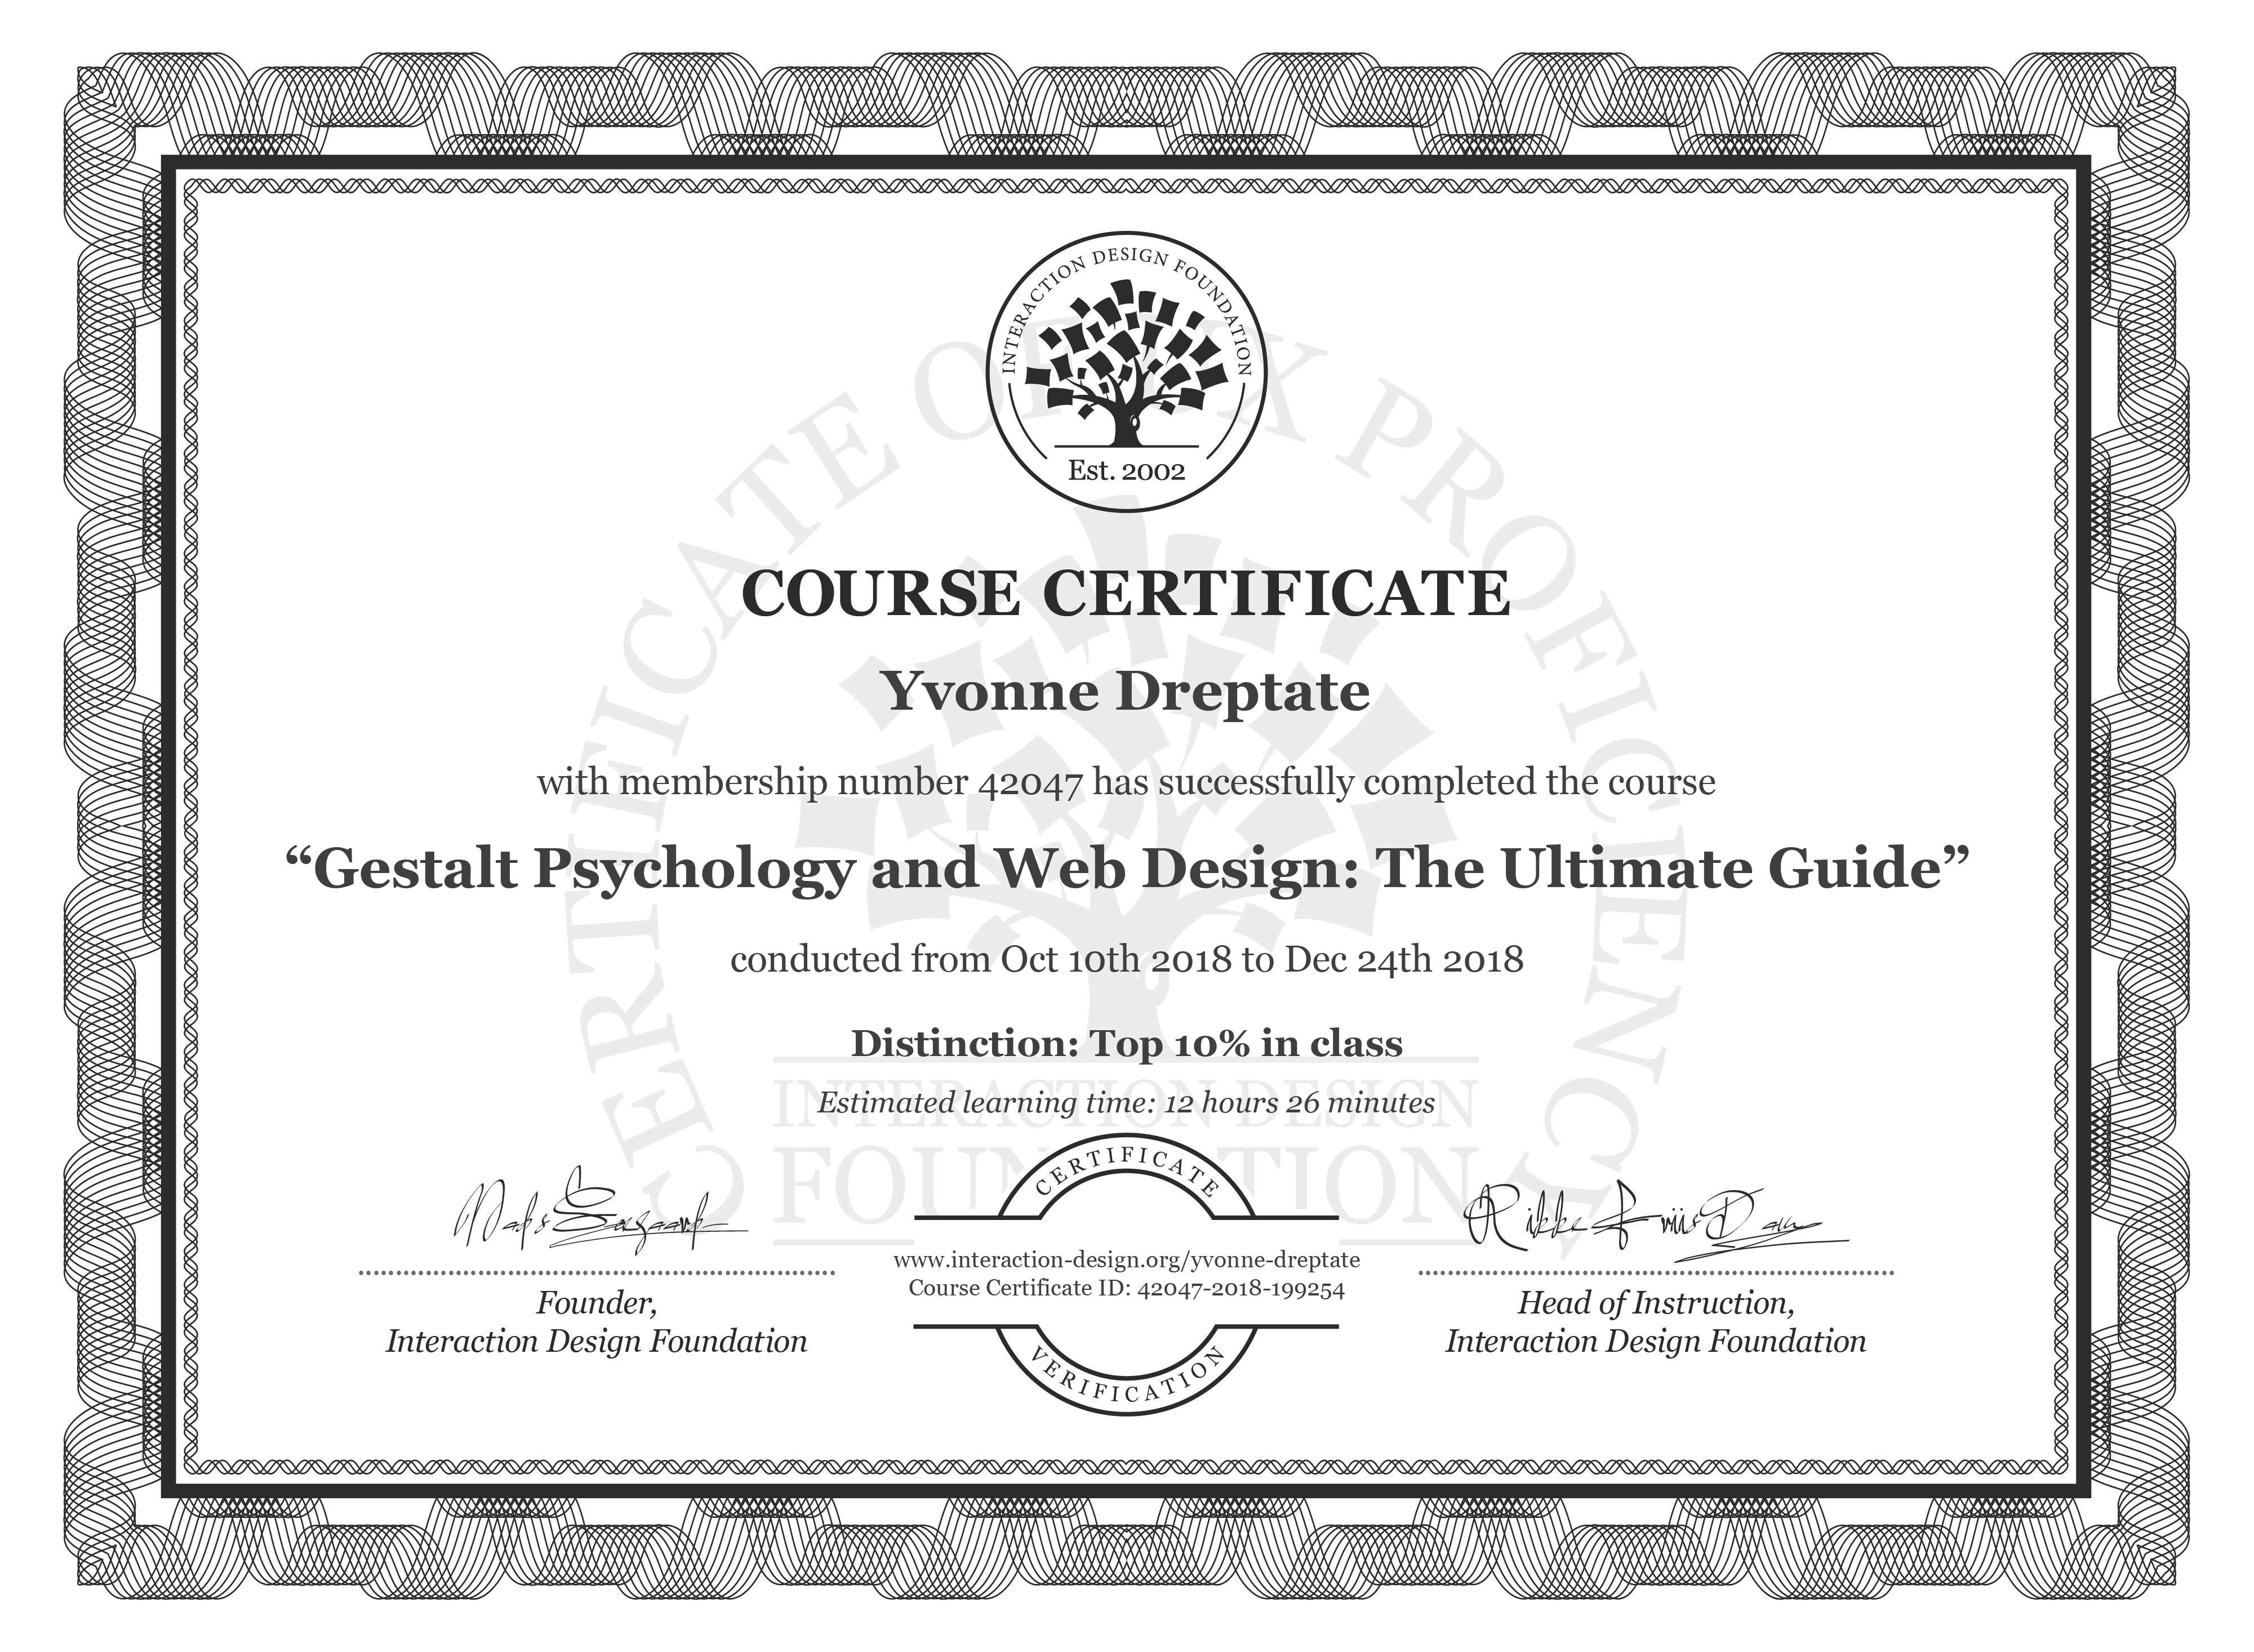 Yvonne Dreptate's Course Certificate: Gestalt Psychology and Web Design: The Ultimate Guide